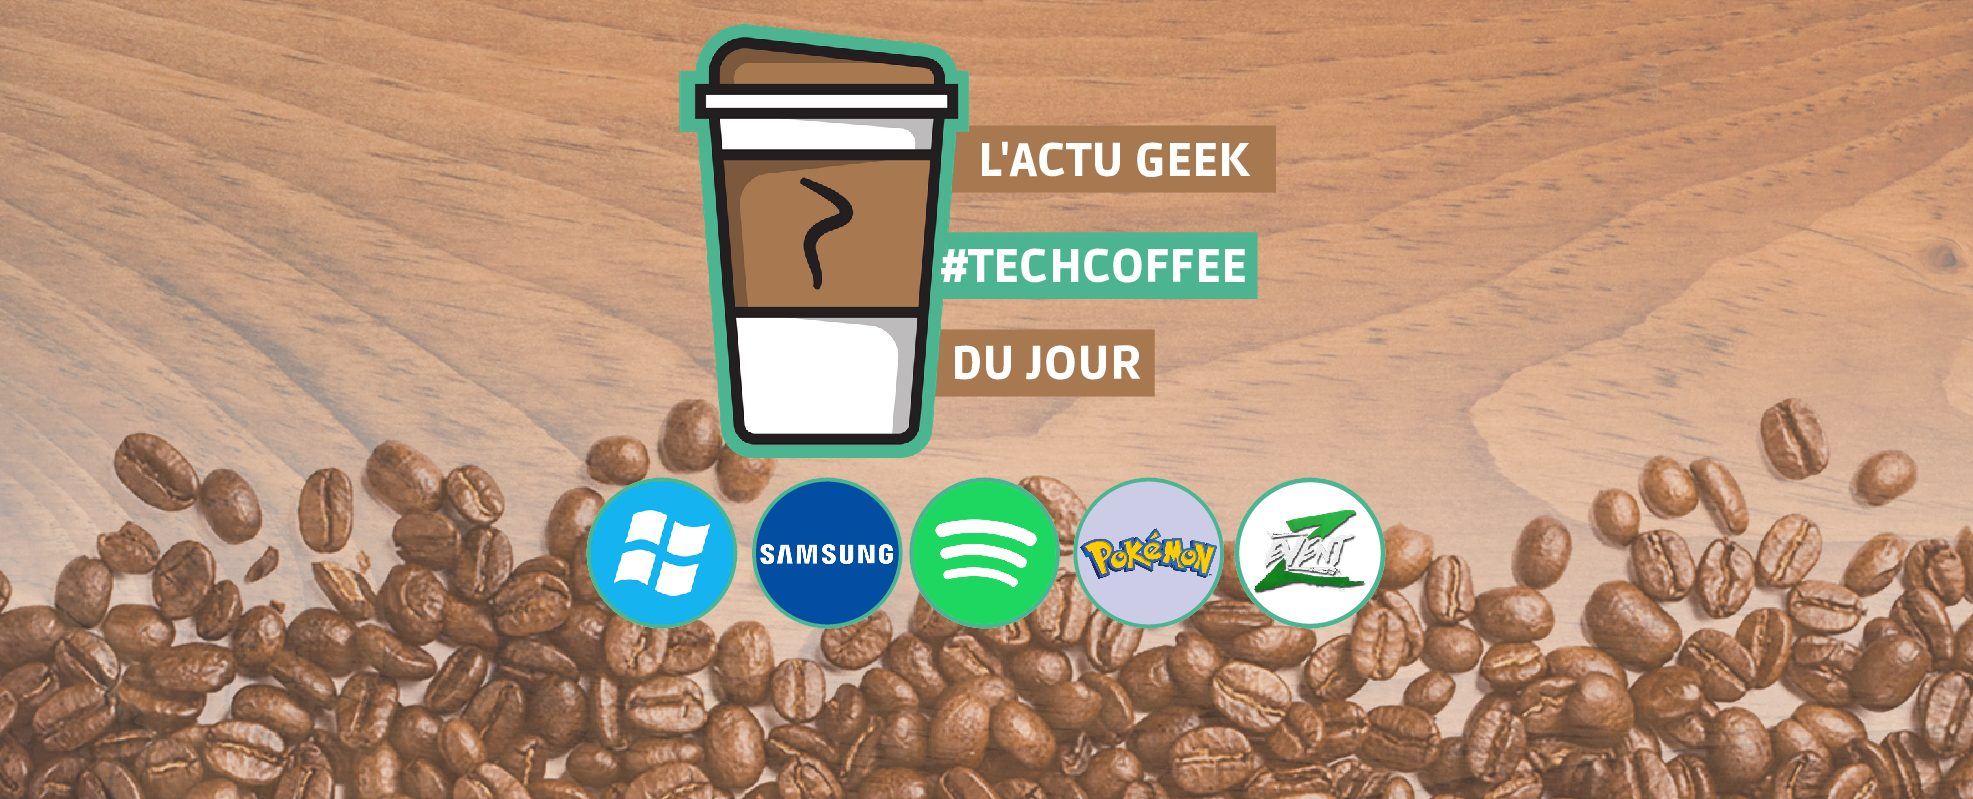 Photo of Spotify sur Apple Watch, Deadpool double Pikachu et le retour de Game of Thrones #TechCoffee